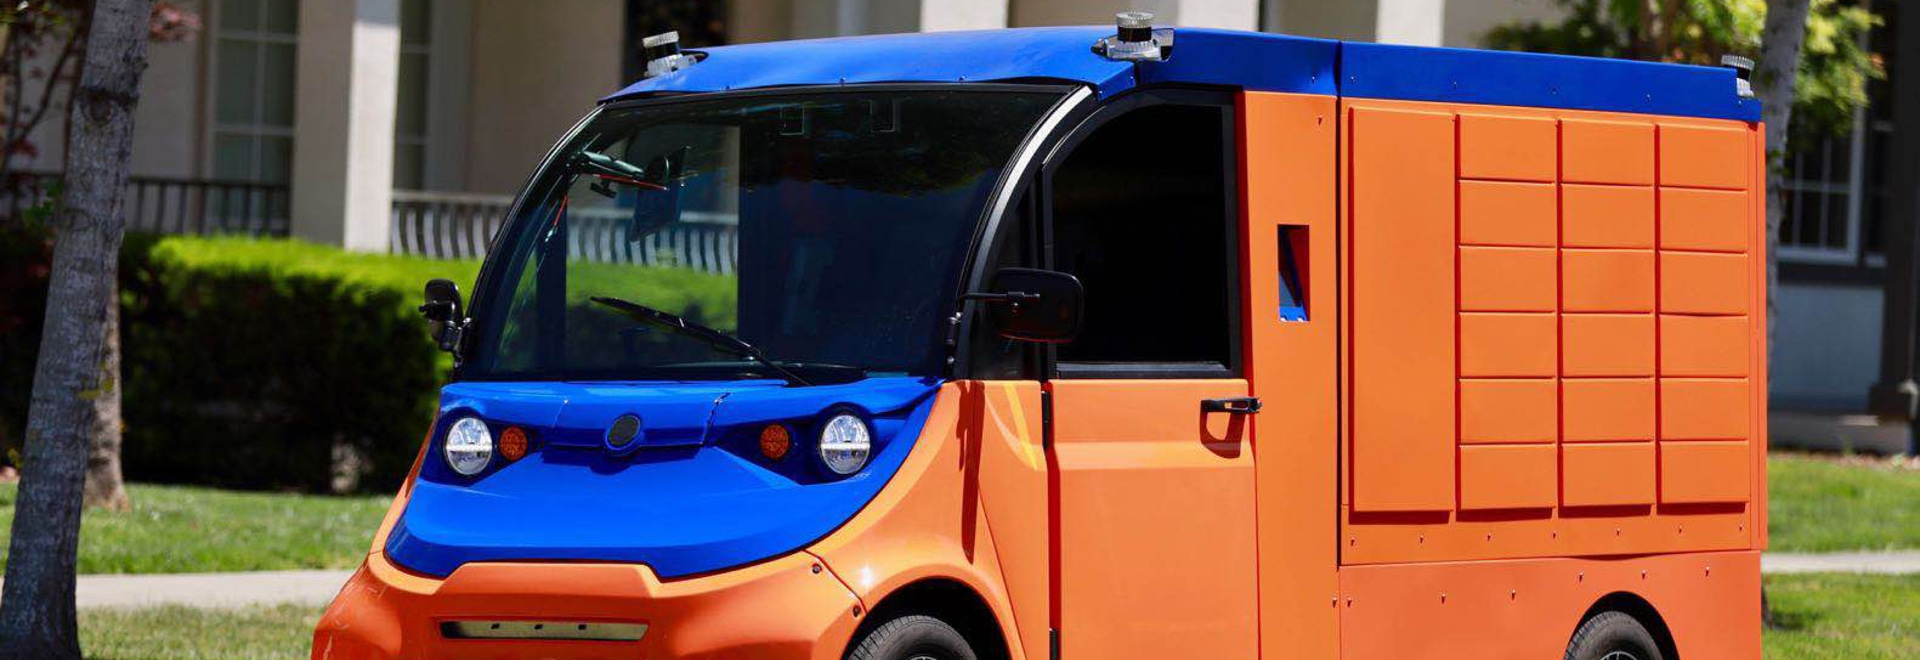 Boxbot Launches Last-Mile, Self-Driving Parcel Delivery System